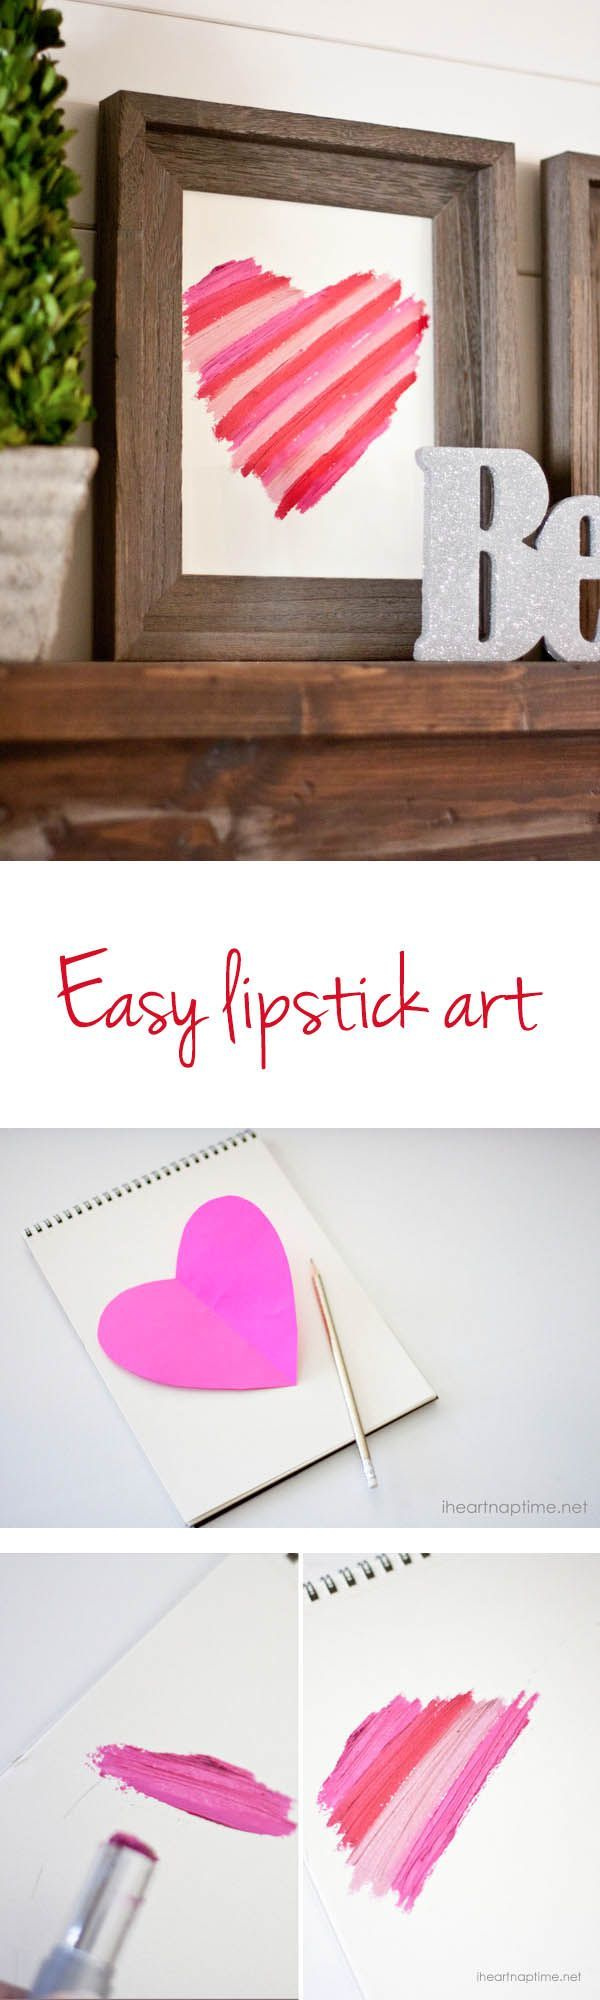 14 Best Mood Bord Deco Love Is Images On Pinterest Valentine Led Chaser Easy Valentines Day Decor Iheartnaptimecom Diy Lipstick Art